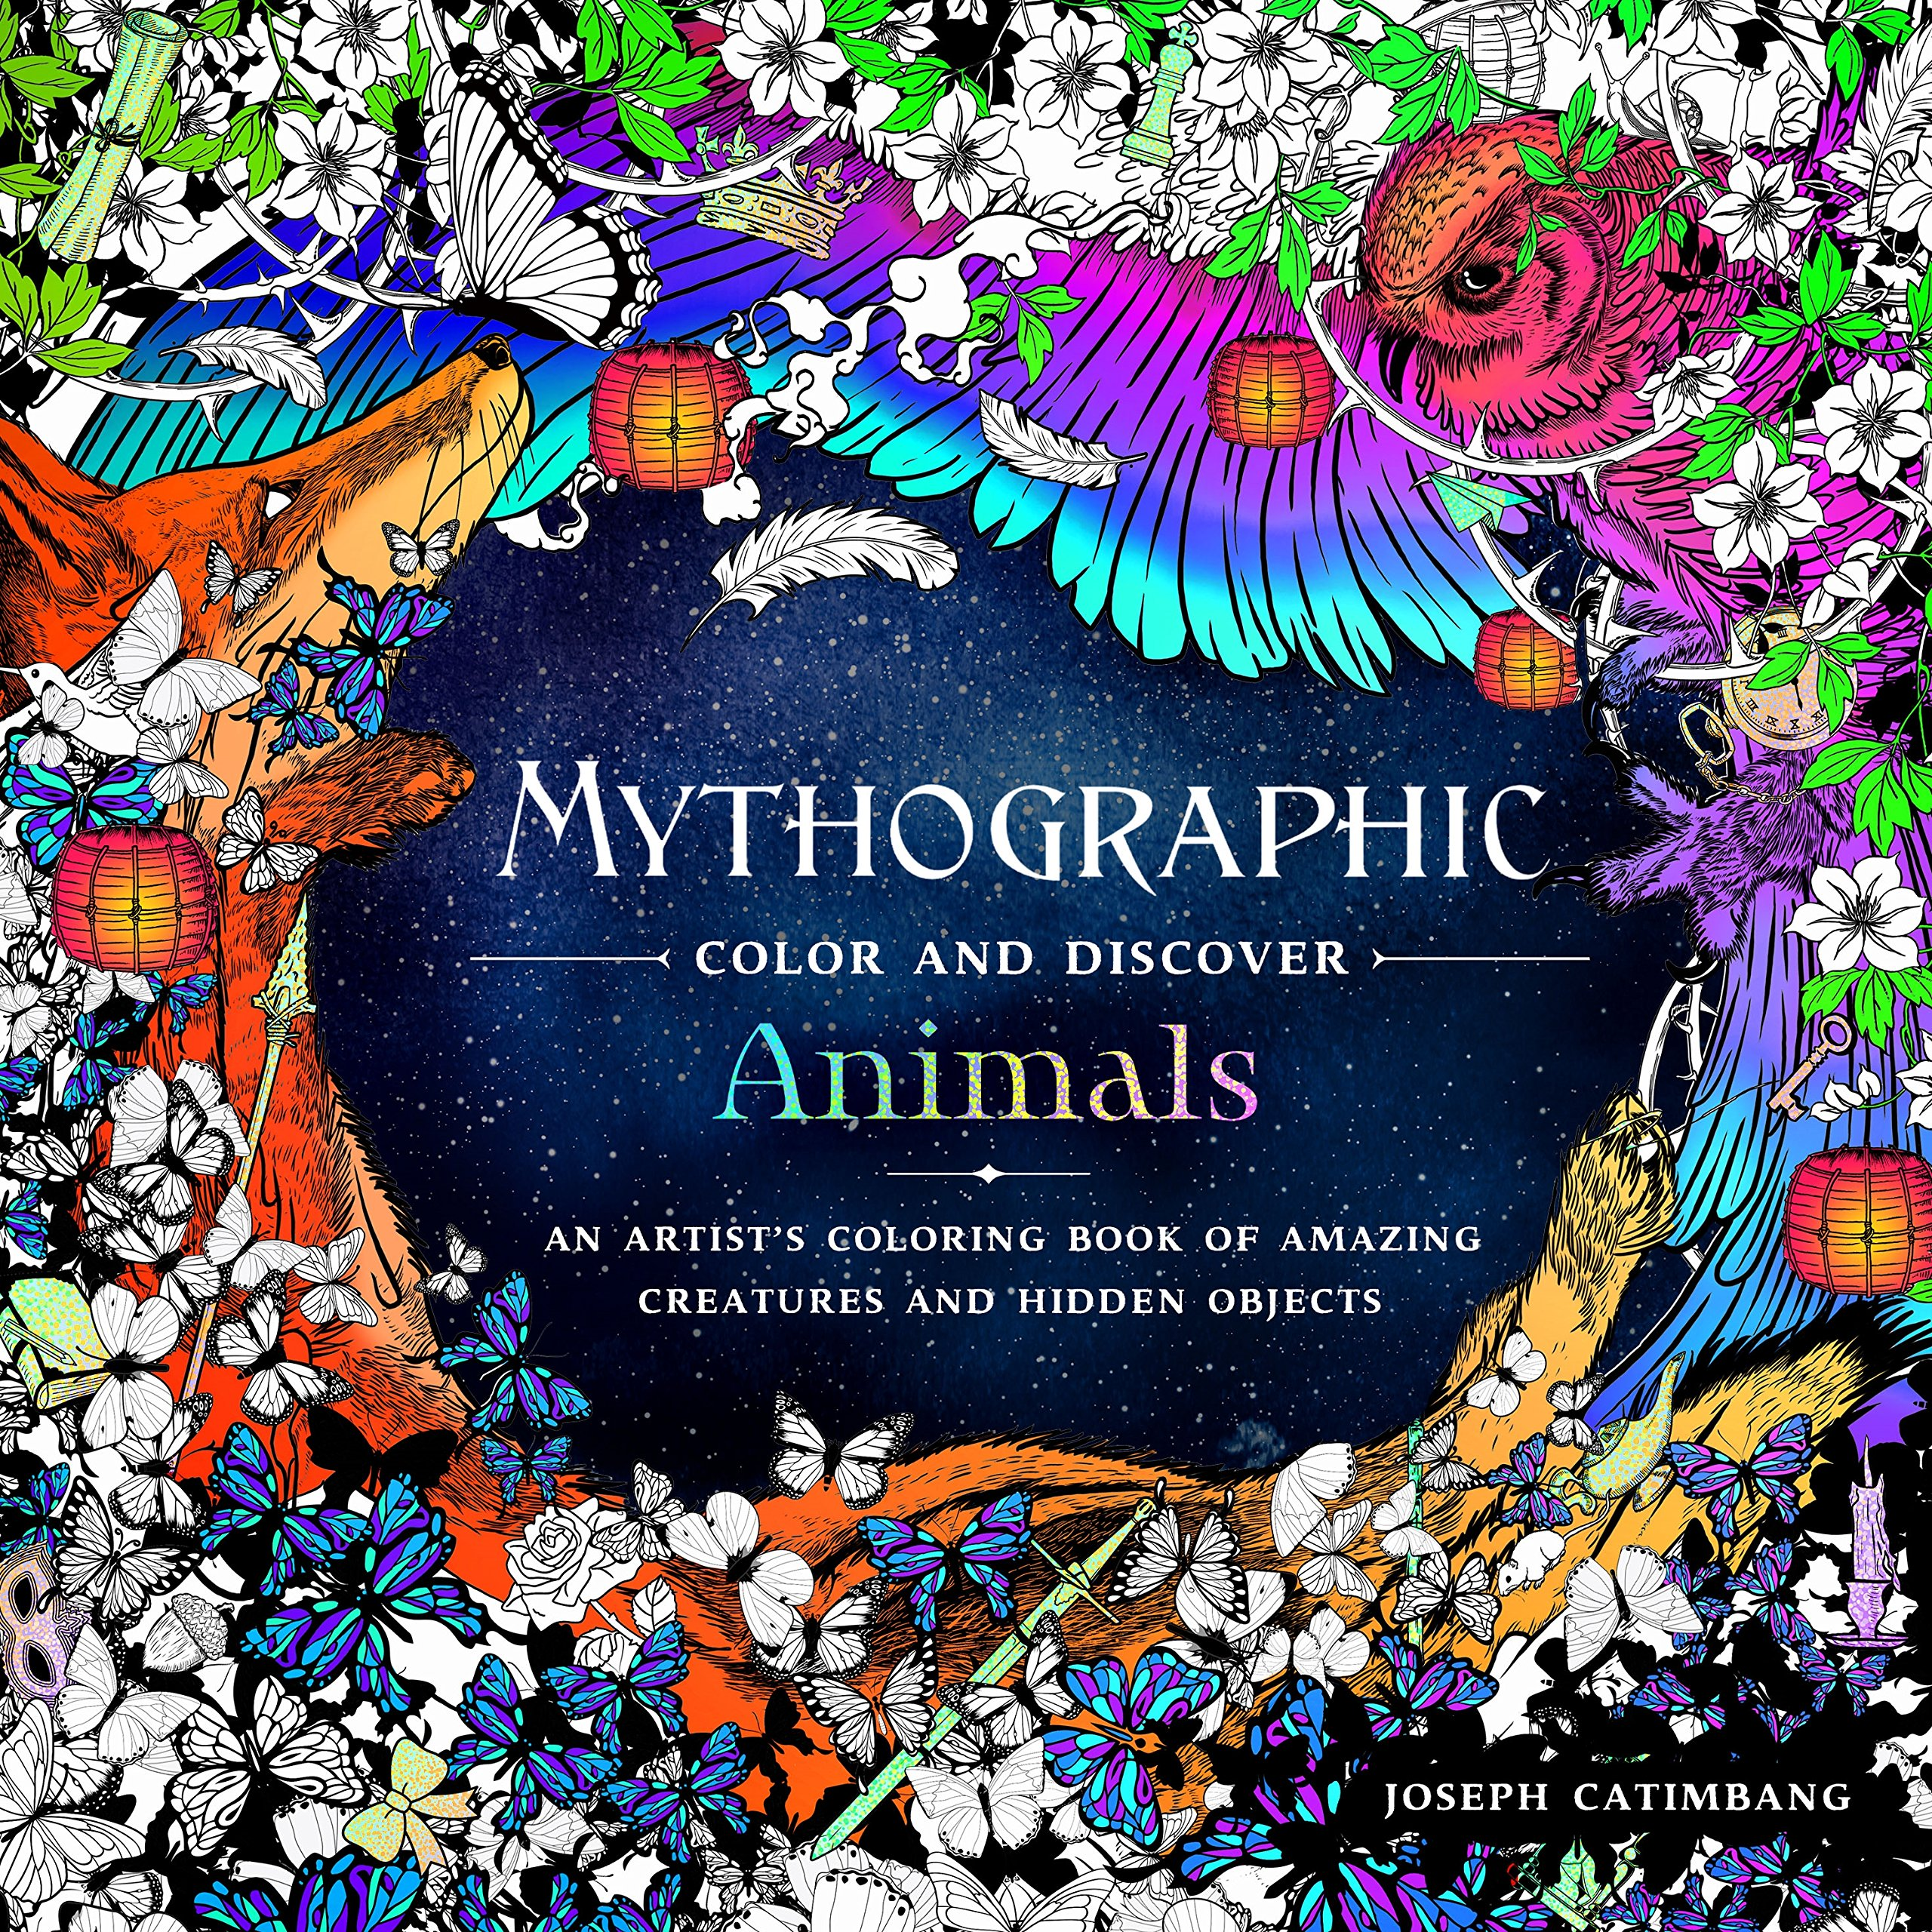 mythographic-color-and-discover-animals-an-artist-s-coloring-book-of-amazing-creatures-and-hidden-objects